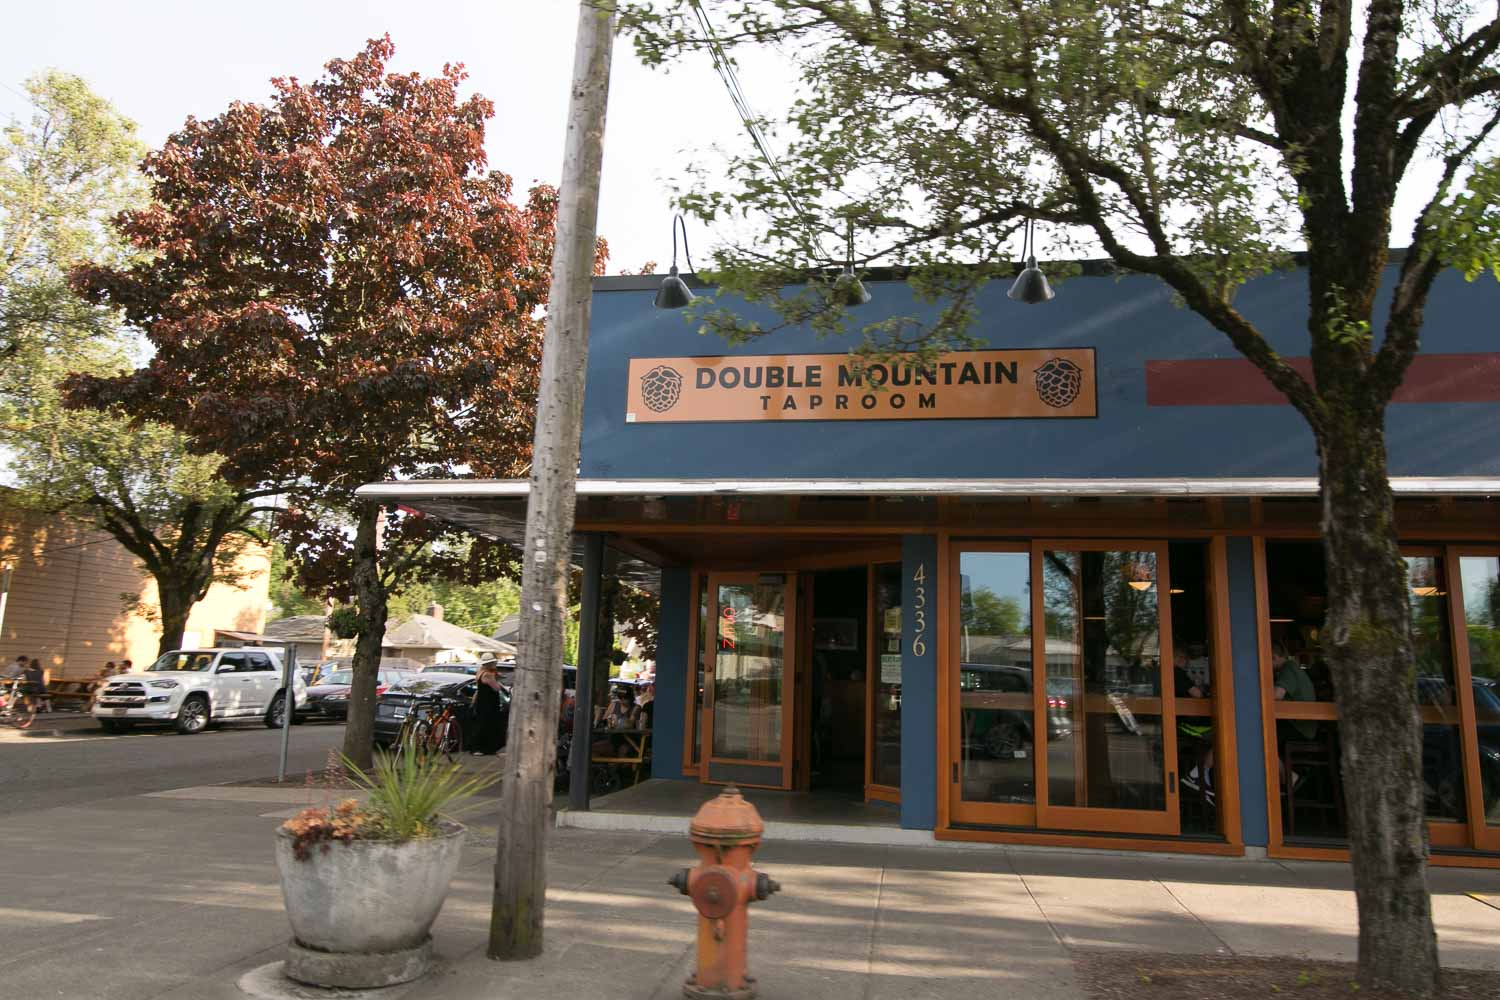 Double Mountain Taproom